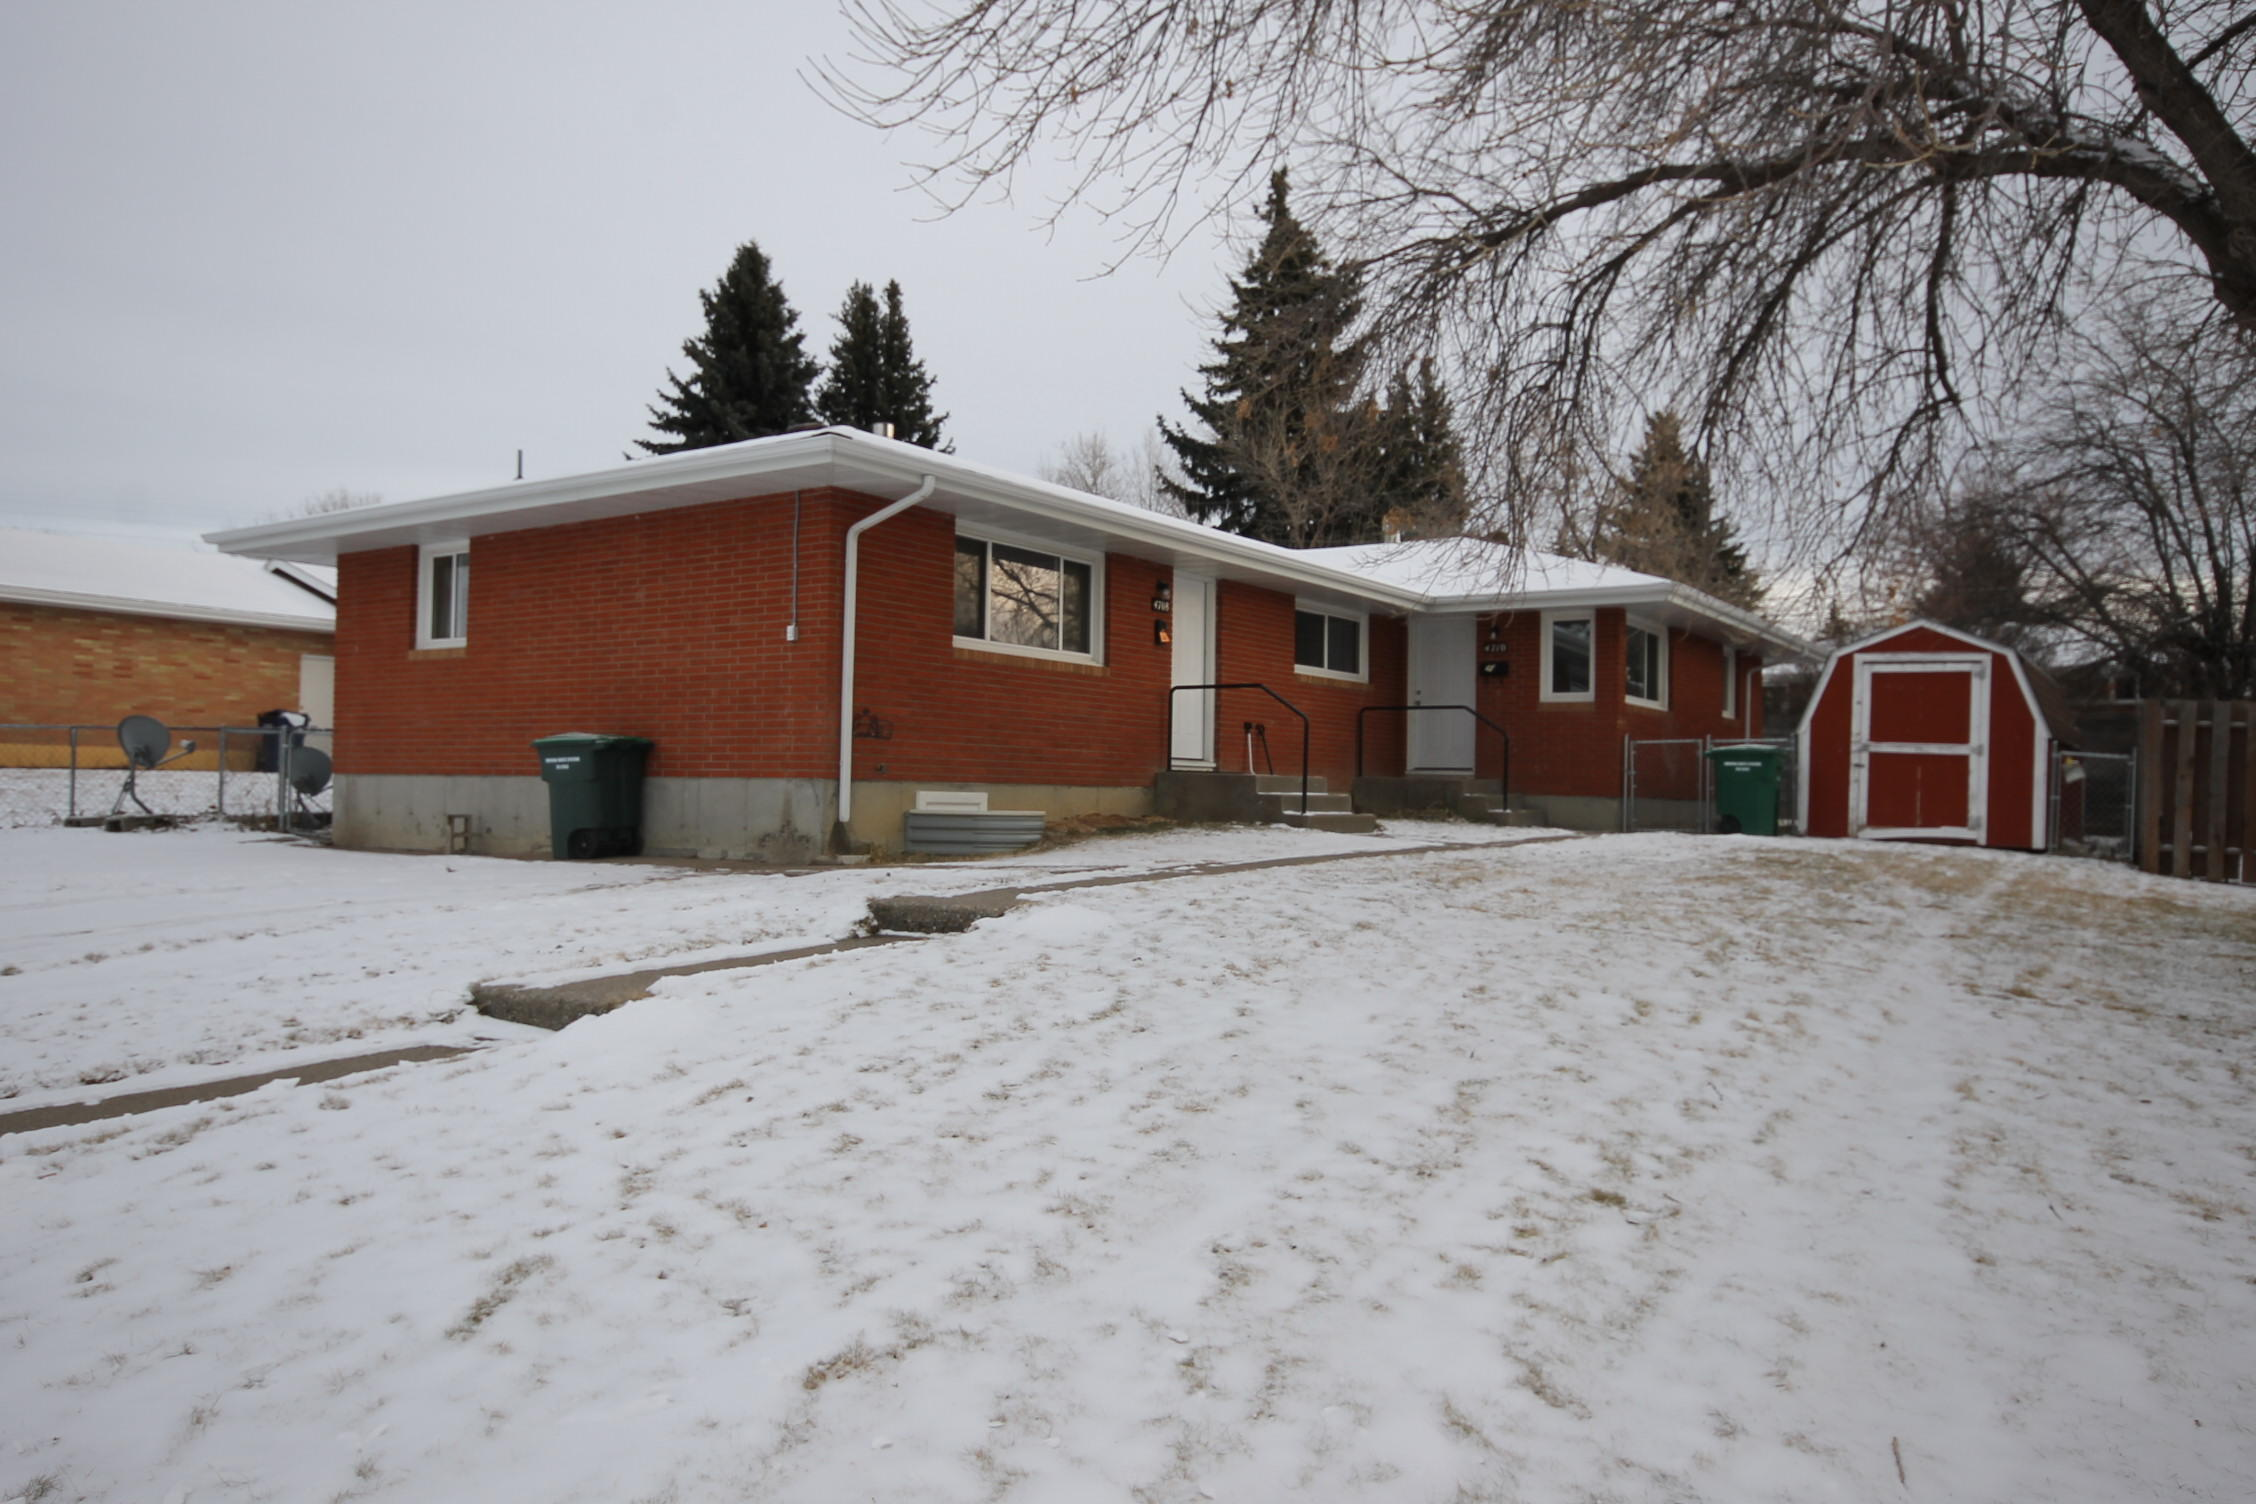 This is the one!! Brick side by side duplex on East end of town. Unit 4710 has been remodeled with new kitchen, flooring and paint. Unit 4710 has 3 beds and 2 baths, fenced back yard and shed. Unit 4708 has 2 bedrooms, 1 bath and unfinished basement  with an egress window already installed. Maintenance free soffit and fascia, upgraded windows, separately metered electric and gas.  2 off street parking spaces. Move in one side and rent the other or rent both sides! Buyer to verify square footage.